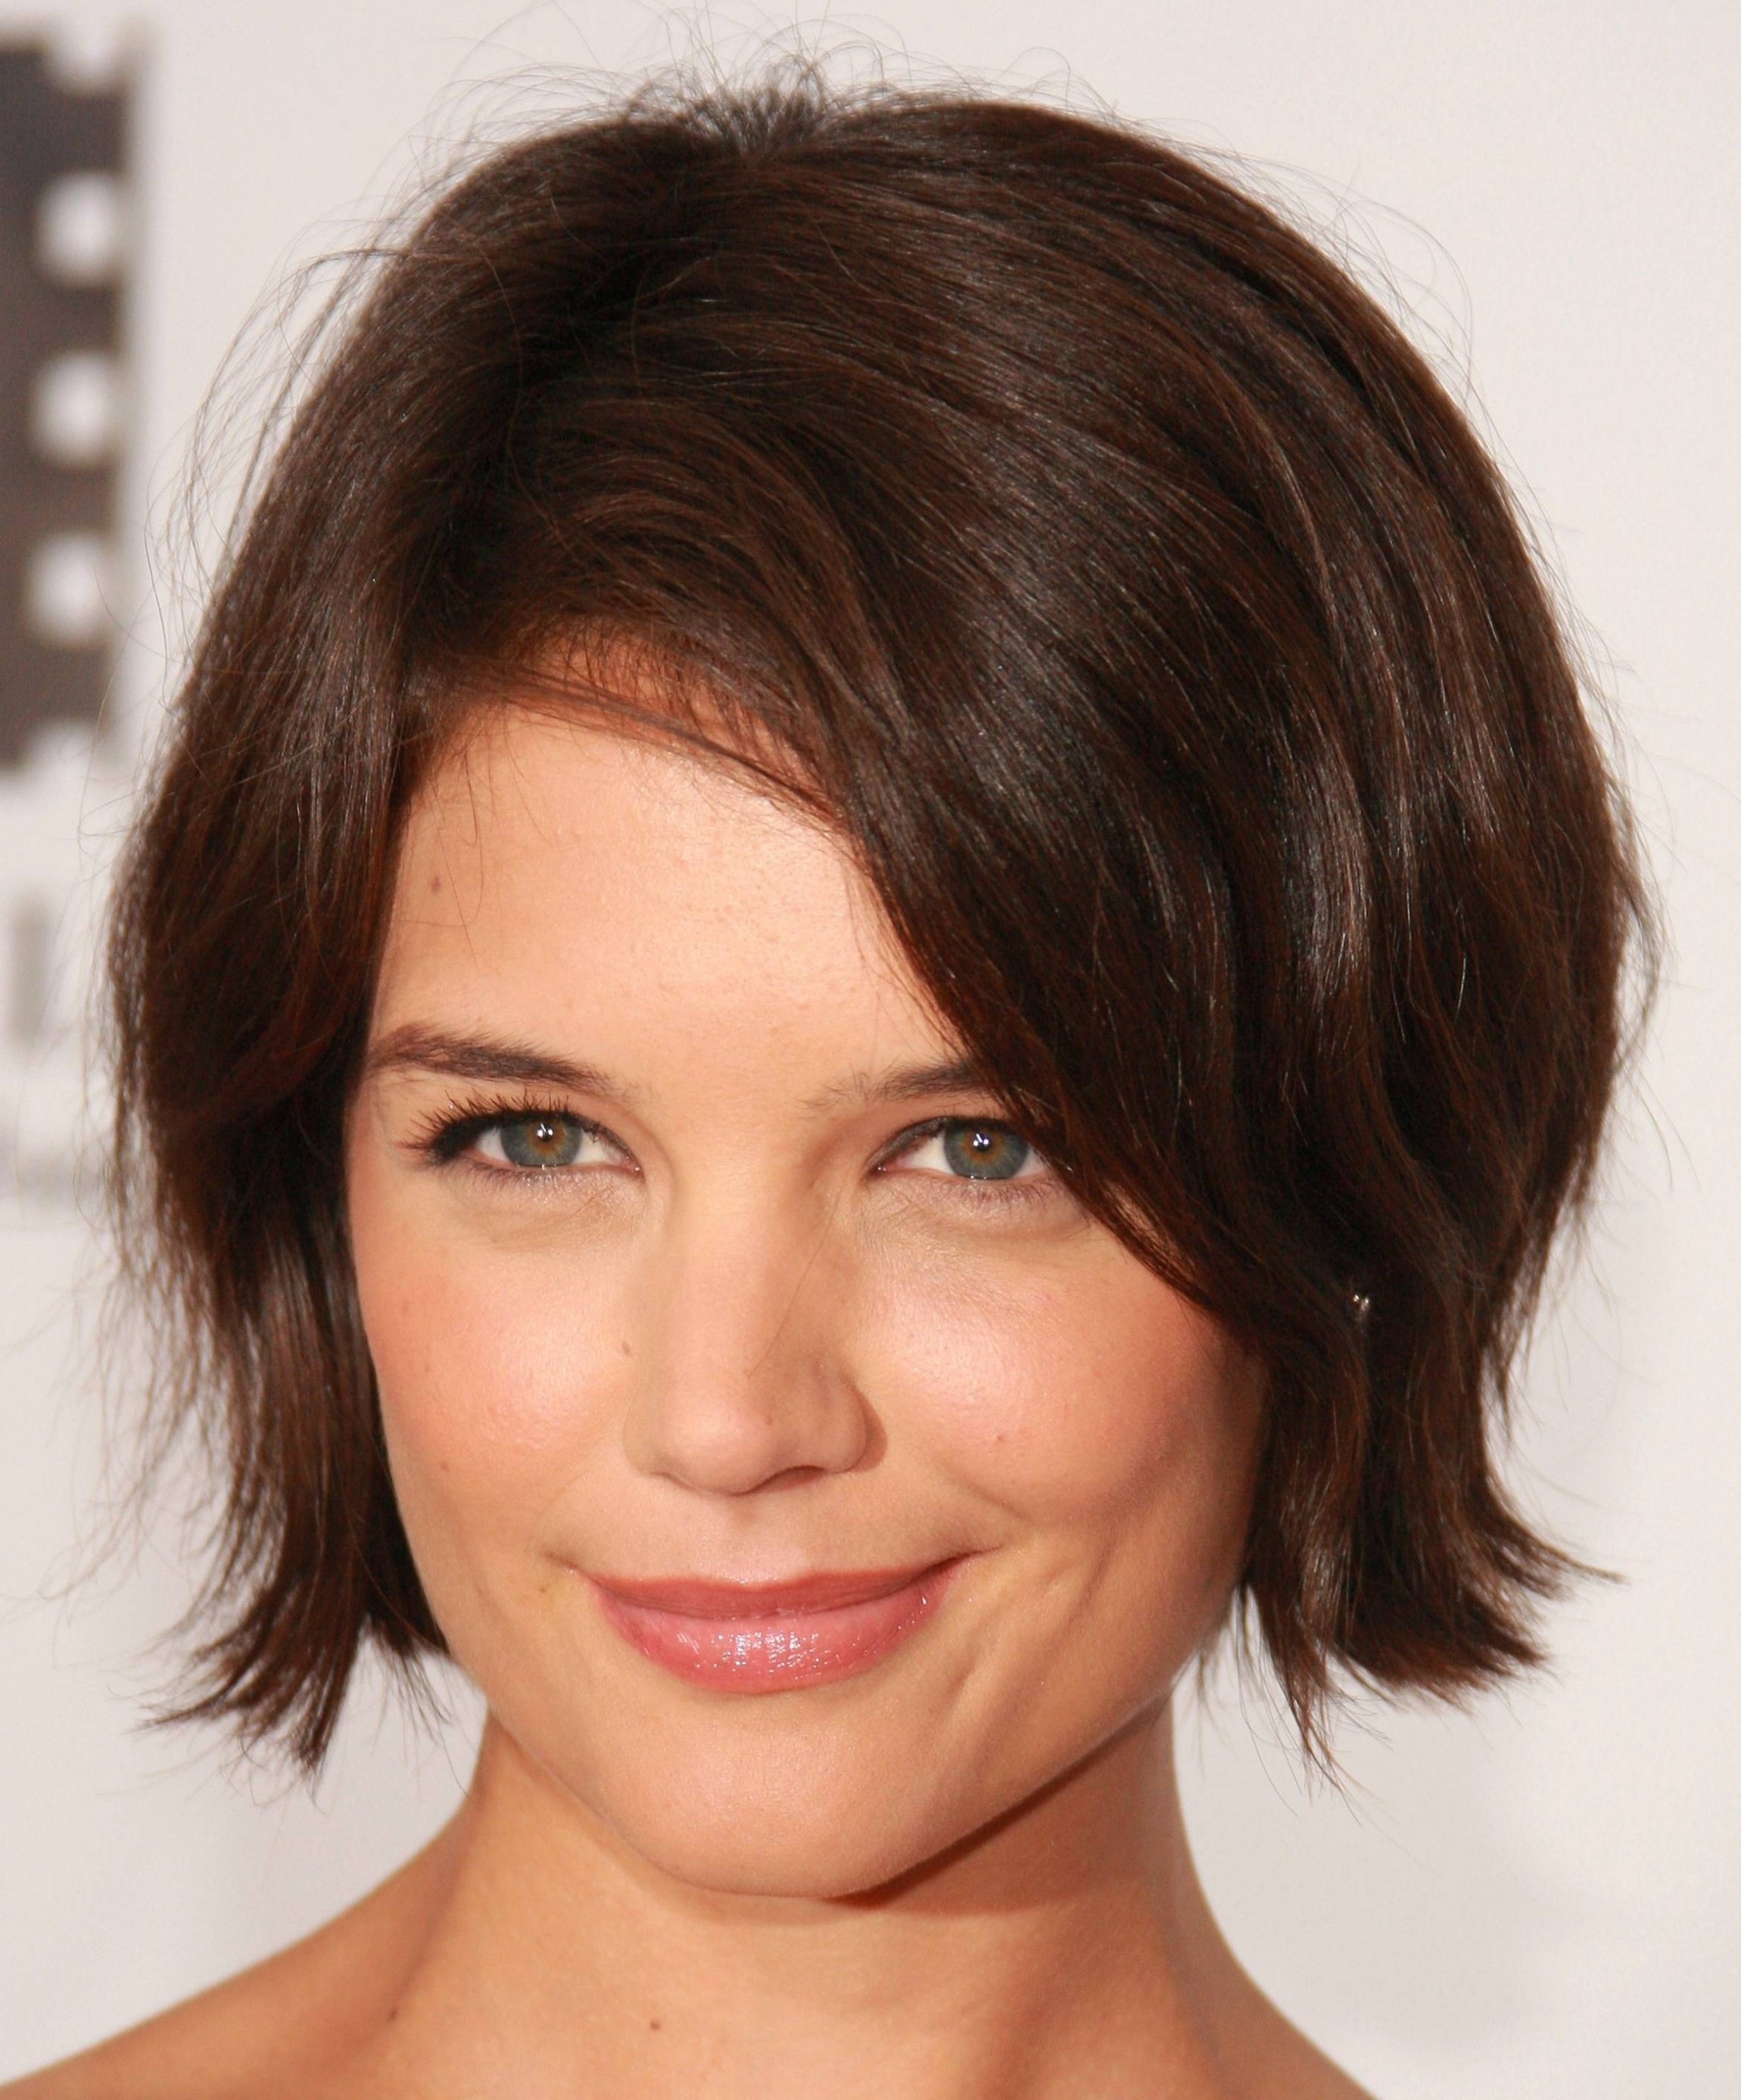 Best Short Hairstyles – Cute Hair Cut Guide For Round Face Shape With Regard To Most Current Pixie Hairstyles On Chubby Face (View 10 of 15)